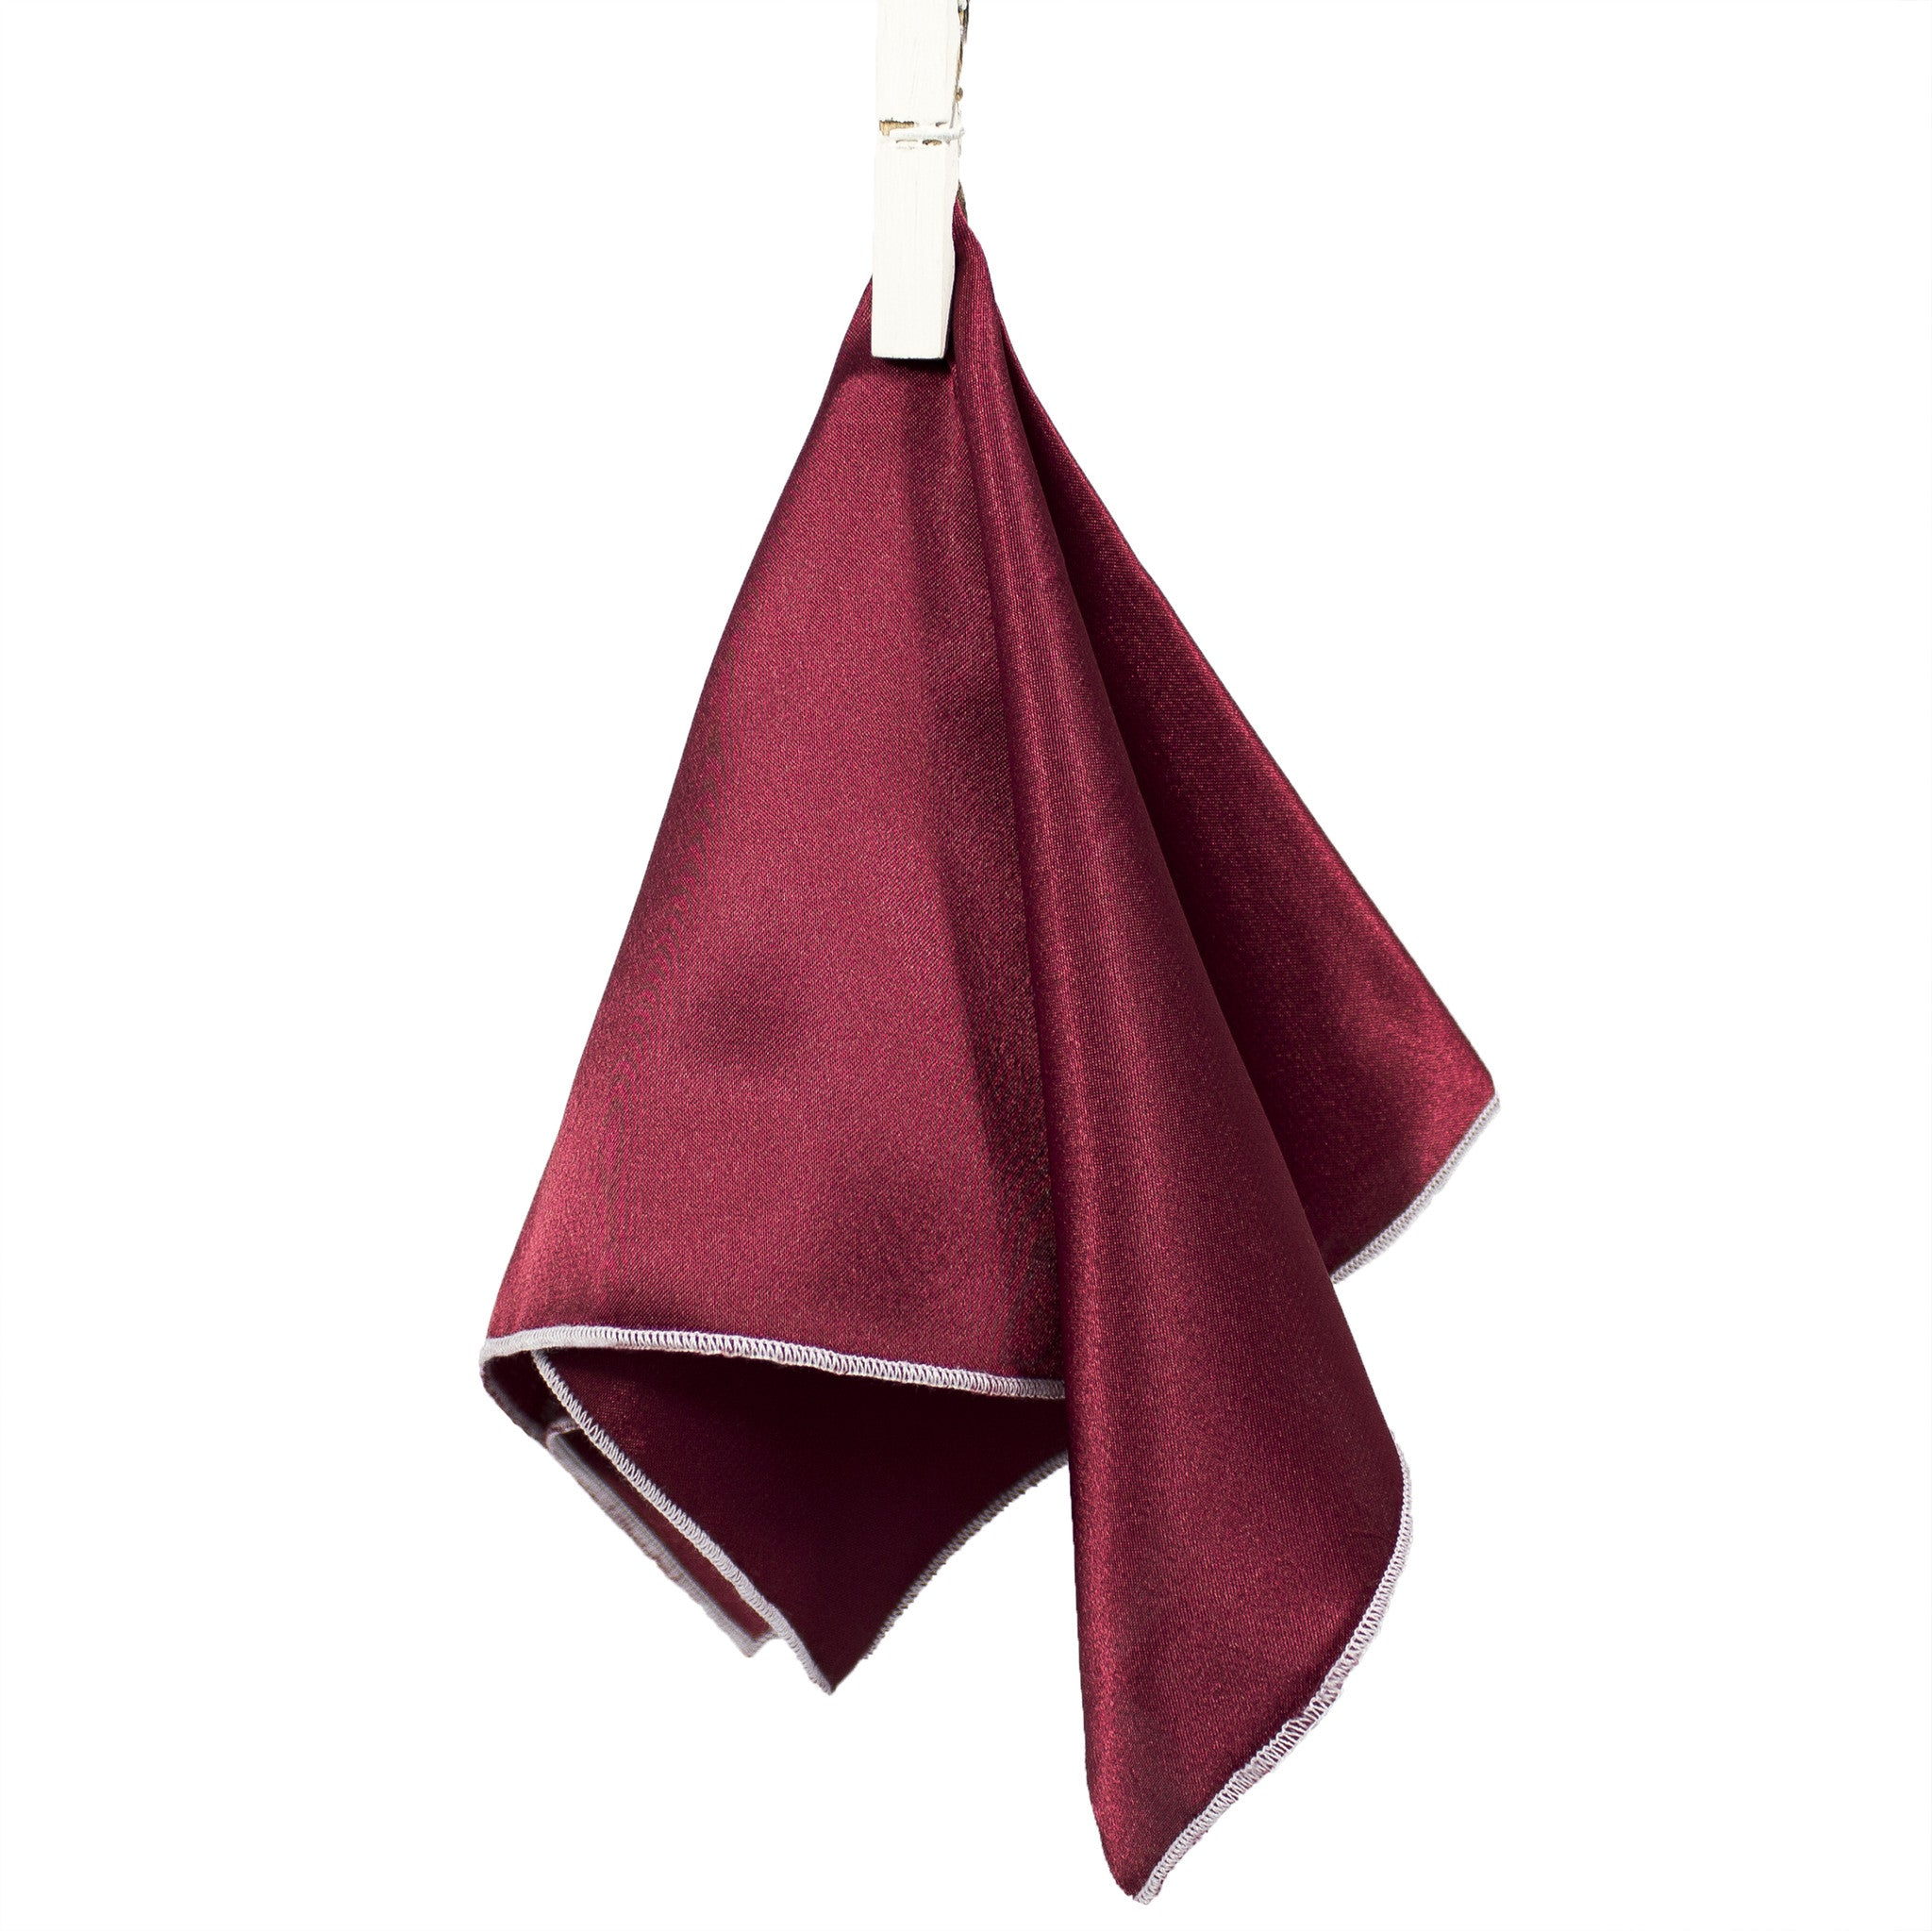 "Parachute Maroon - Merrow Stitch Pocket Square (11""x11"") - Stolen Riches / CA"